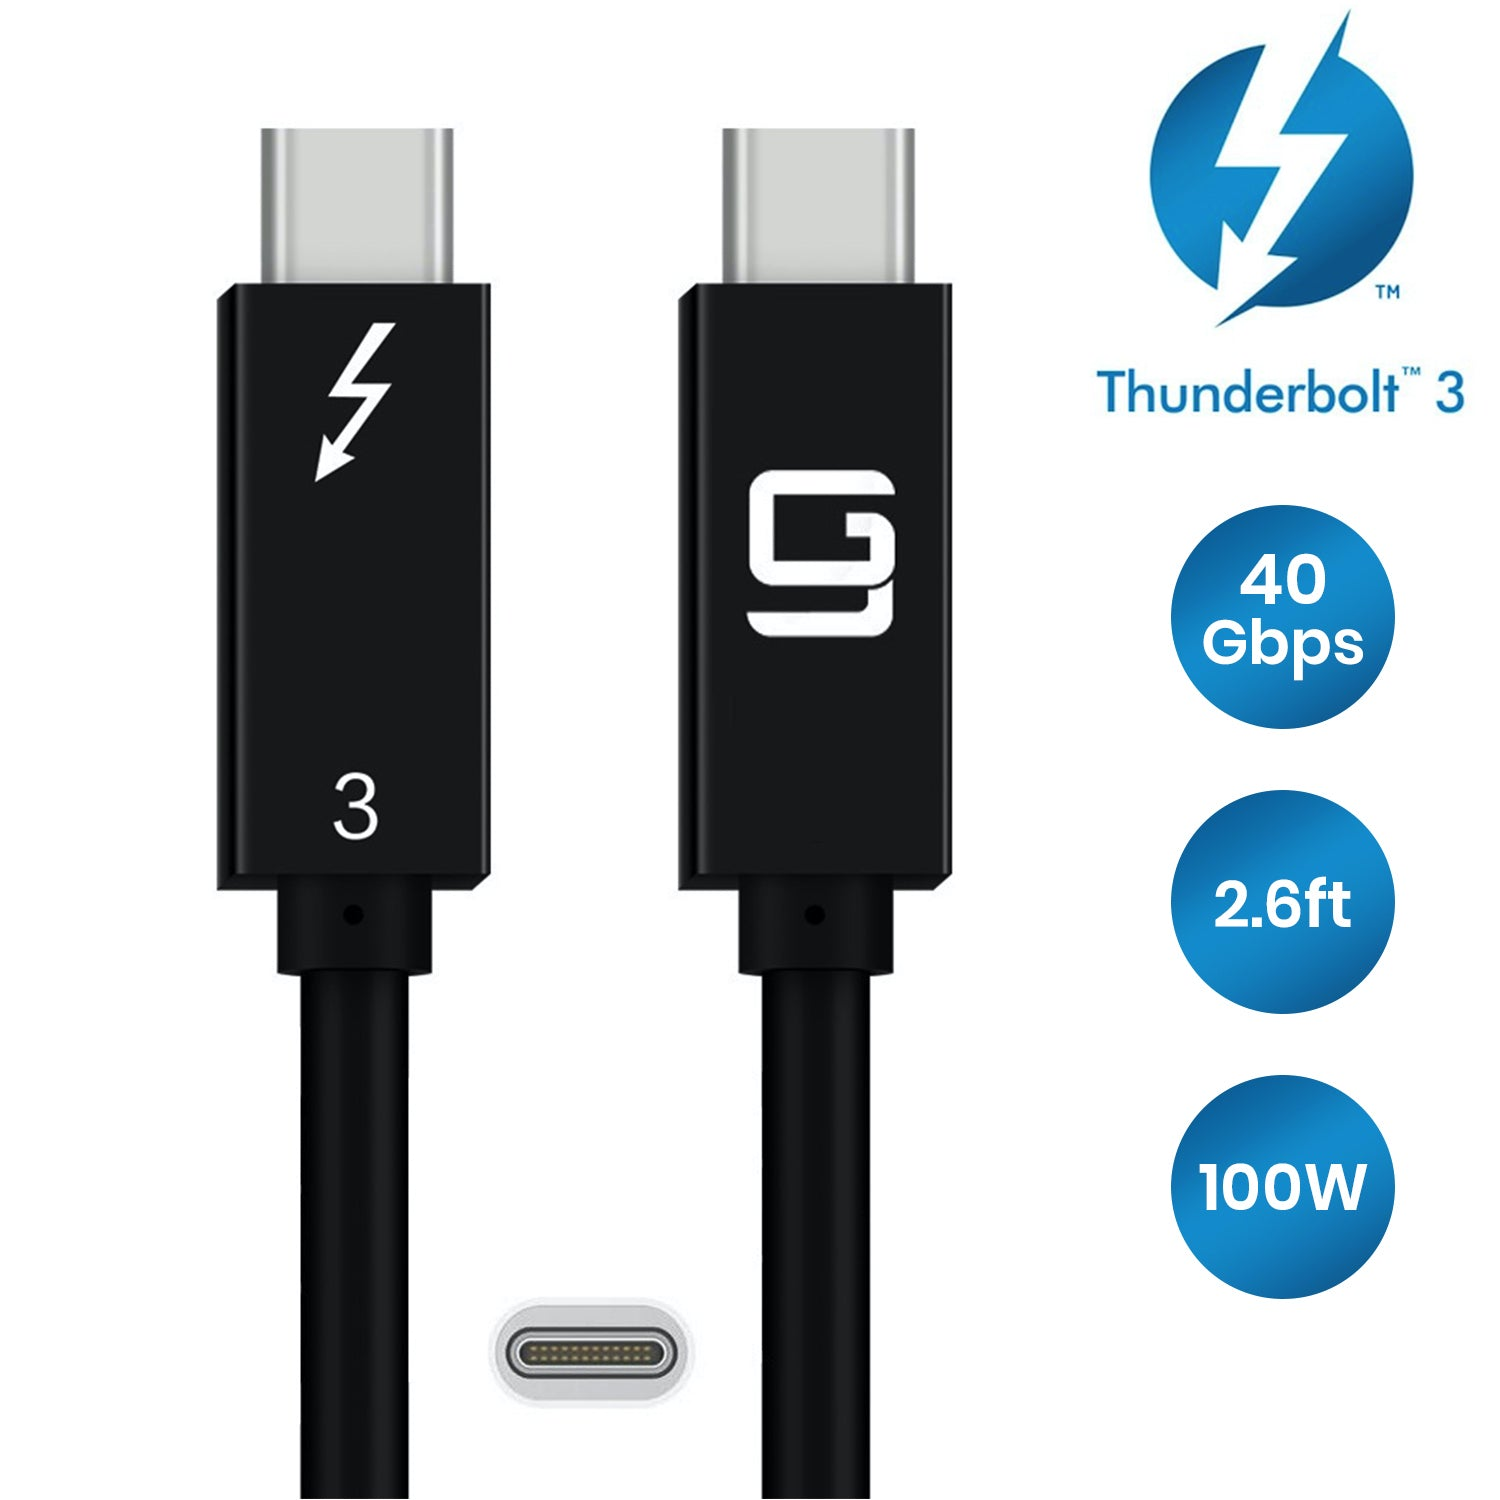 CY Thunderbolt 3 USB-C USB 3.1 Male to Thunderbolt 3 Male 40Gbps Cable for PC /& Laptop 2M